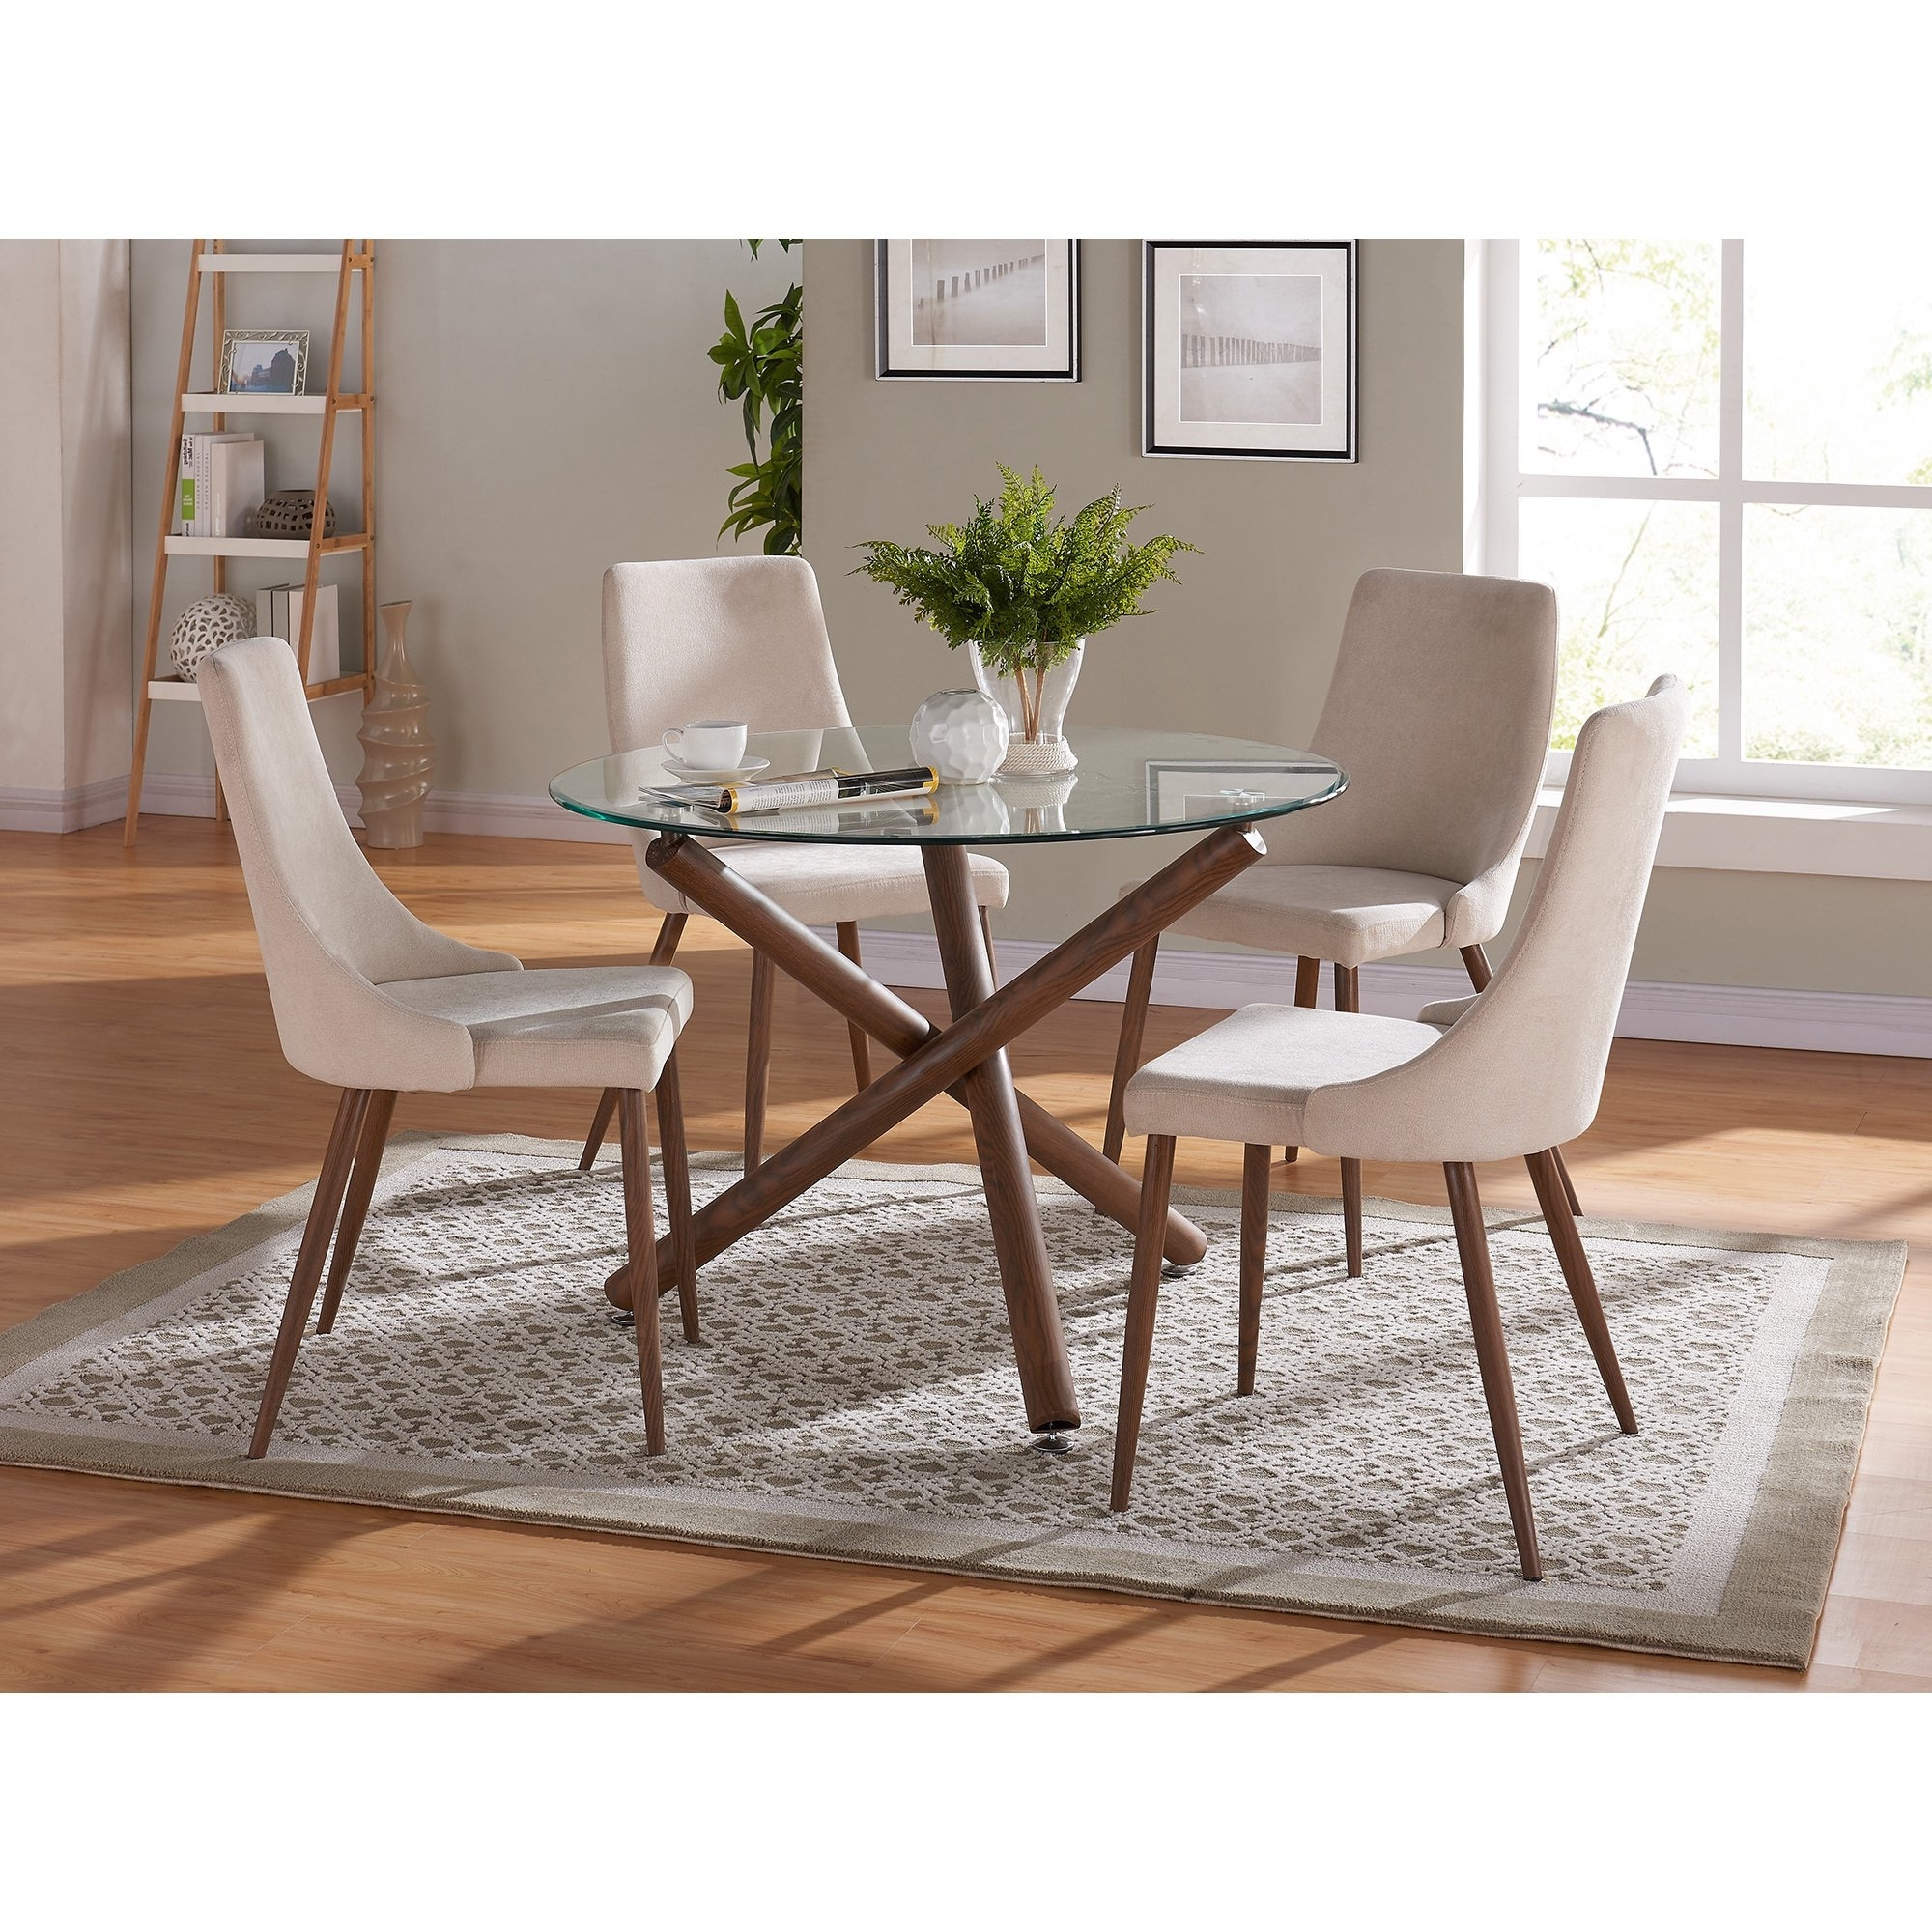 Fashionable Cora 5 Piece Dining Sets Inside Shop Carson Carrington Kaskinen Dining Chair (Set Of 2) – Free (View 4 of 25)